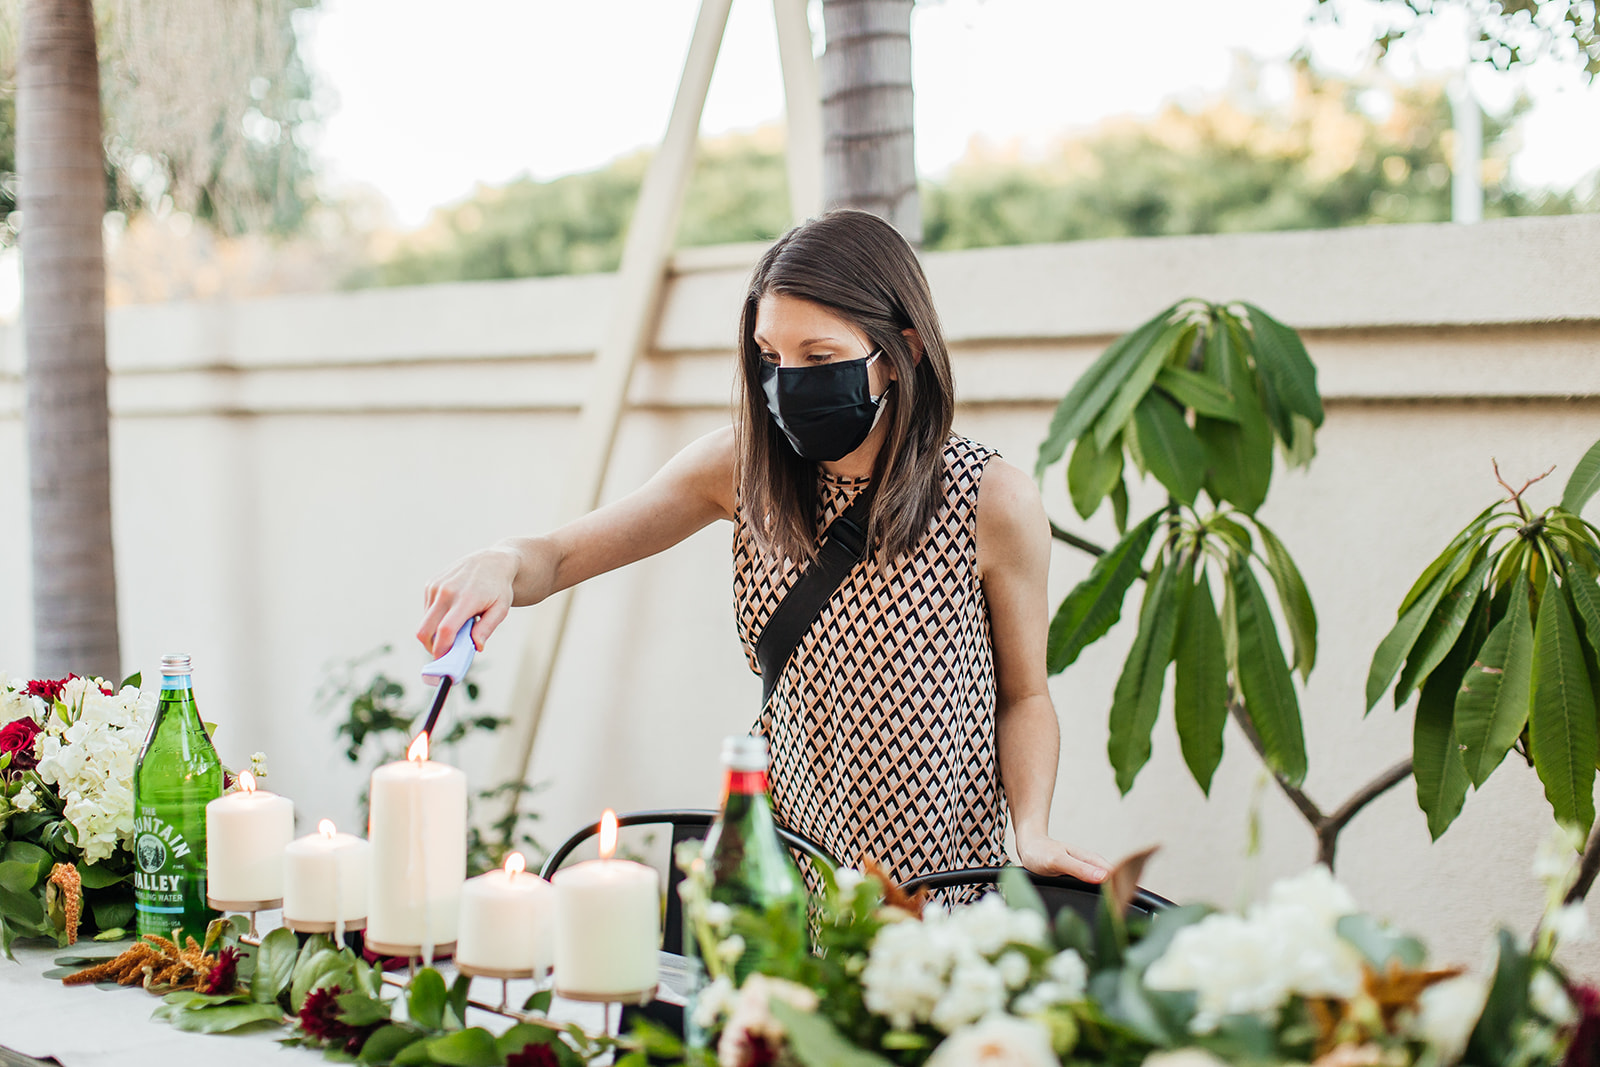 Wedding Planner in mask lights candles on tables